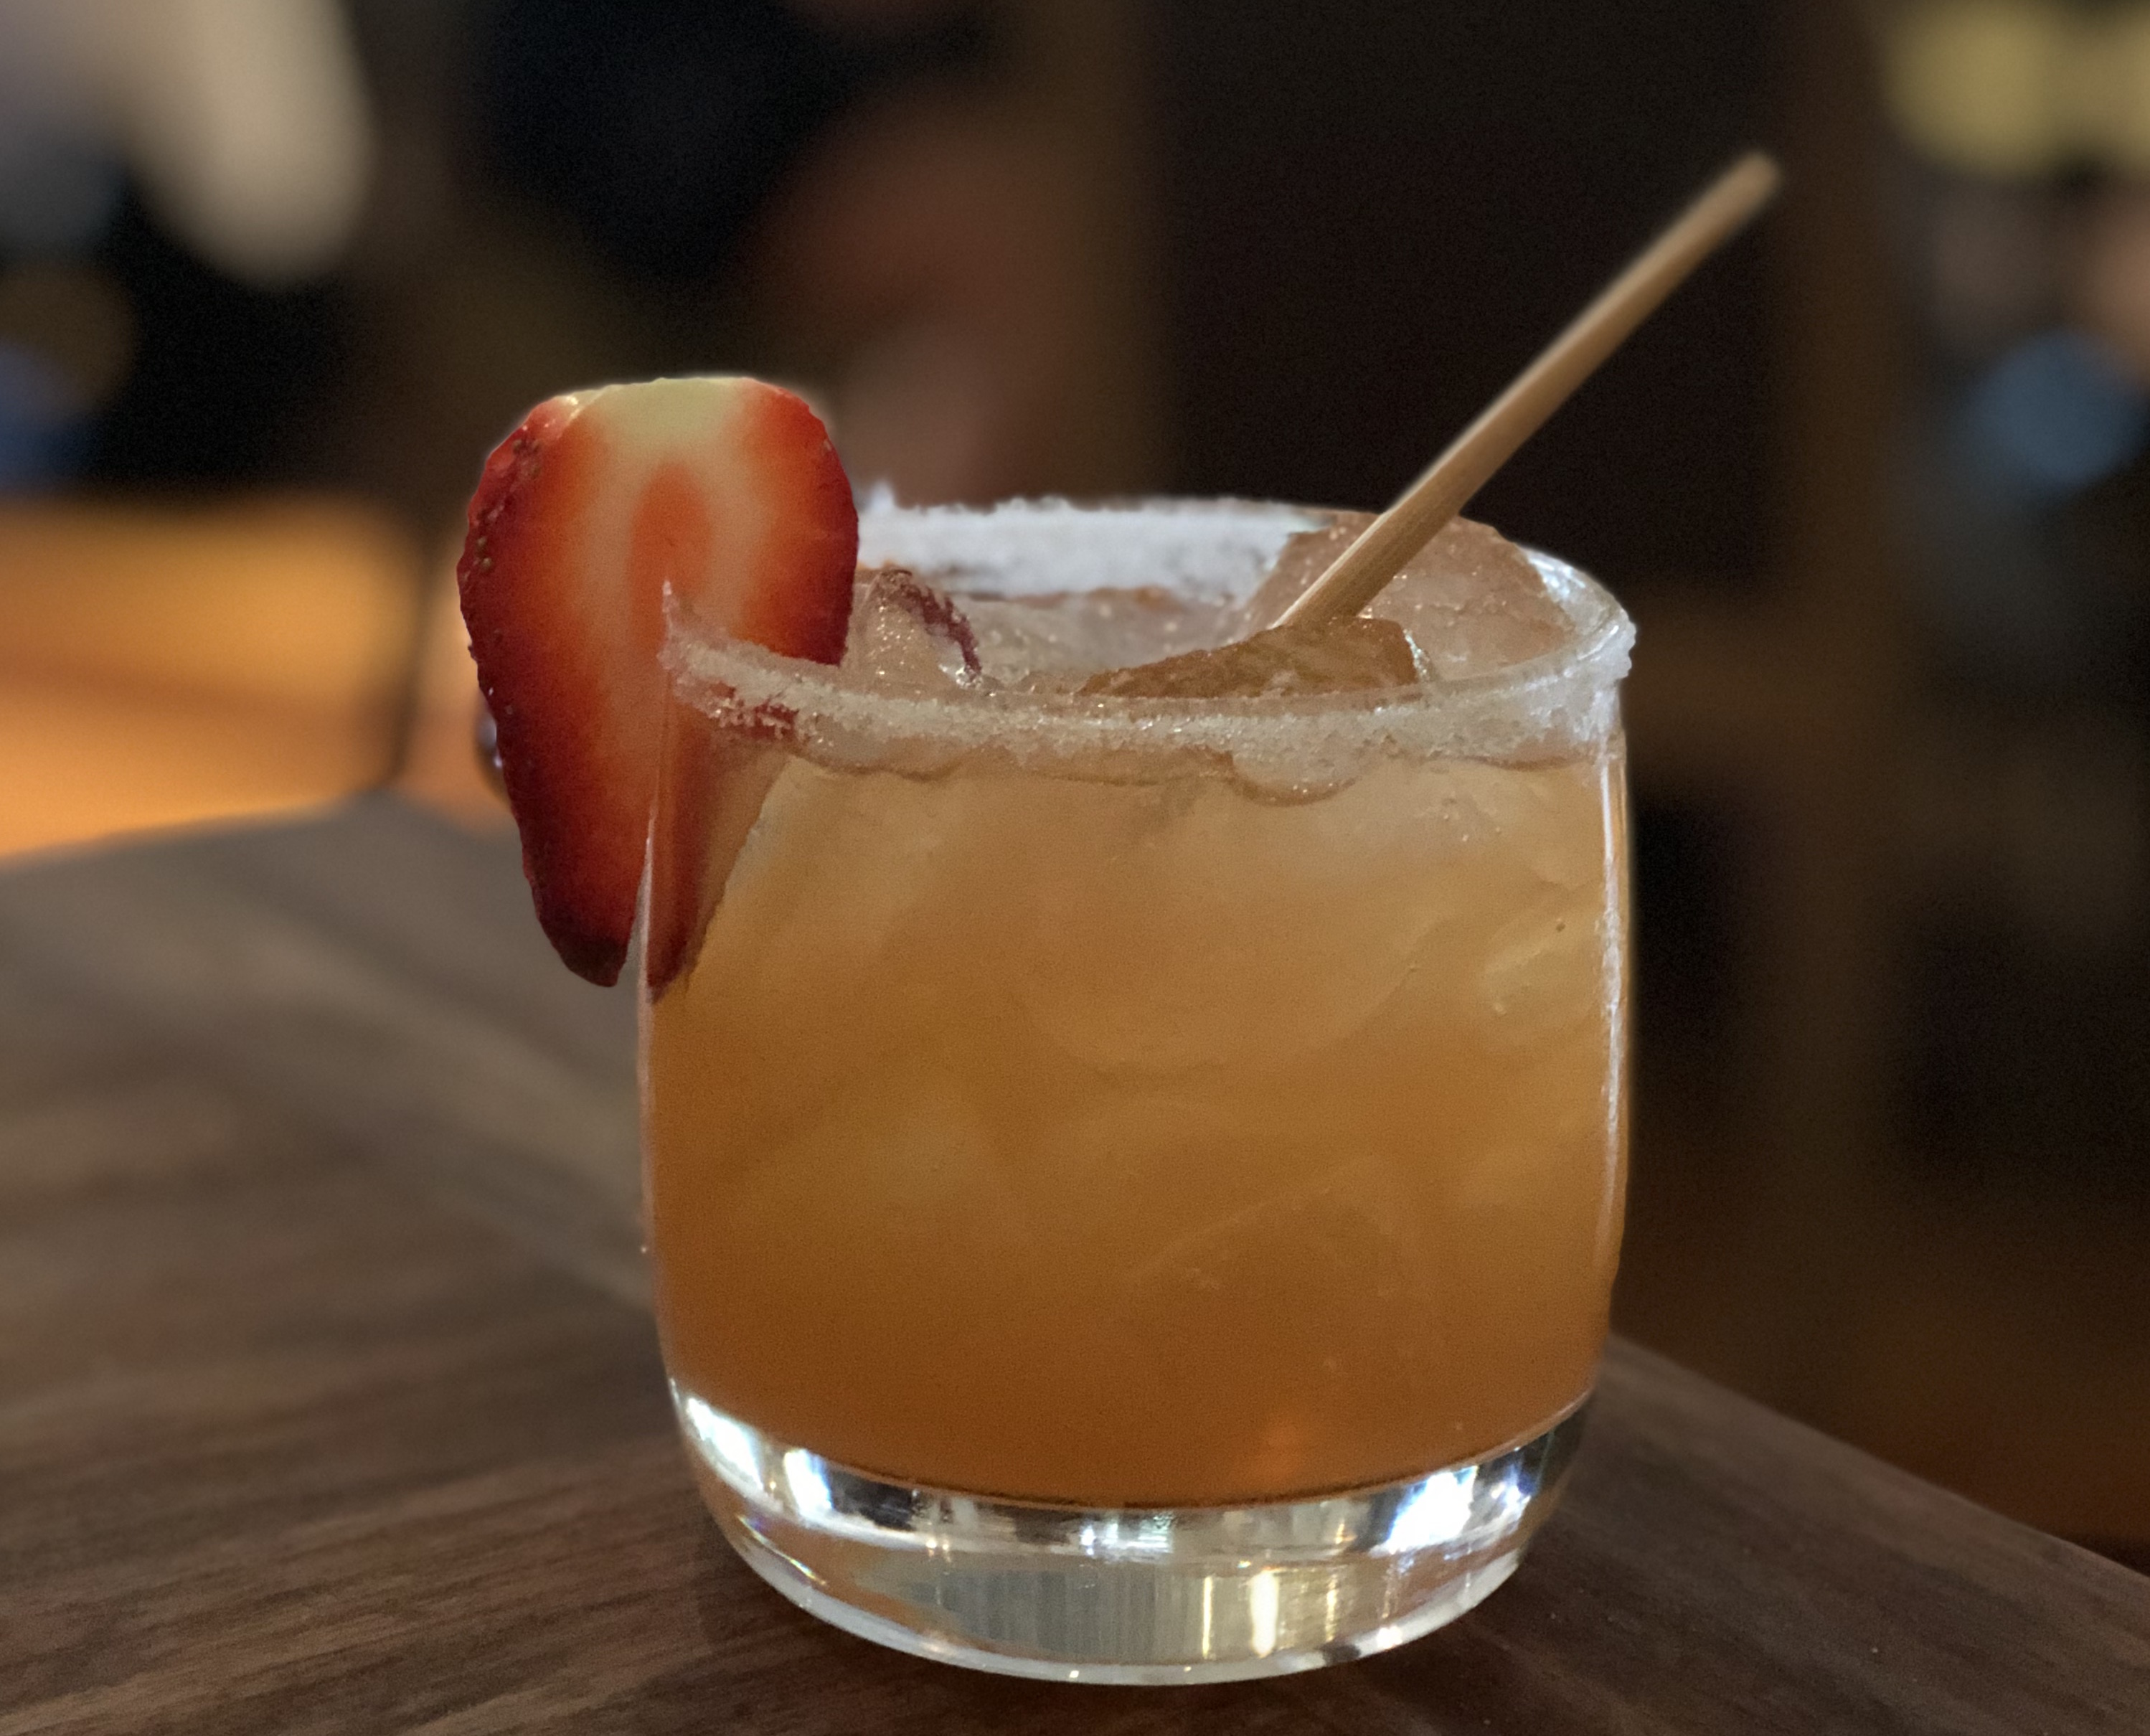 March Cocktail Benefits Mid-City Neighborhood Association Accompanying Image